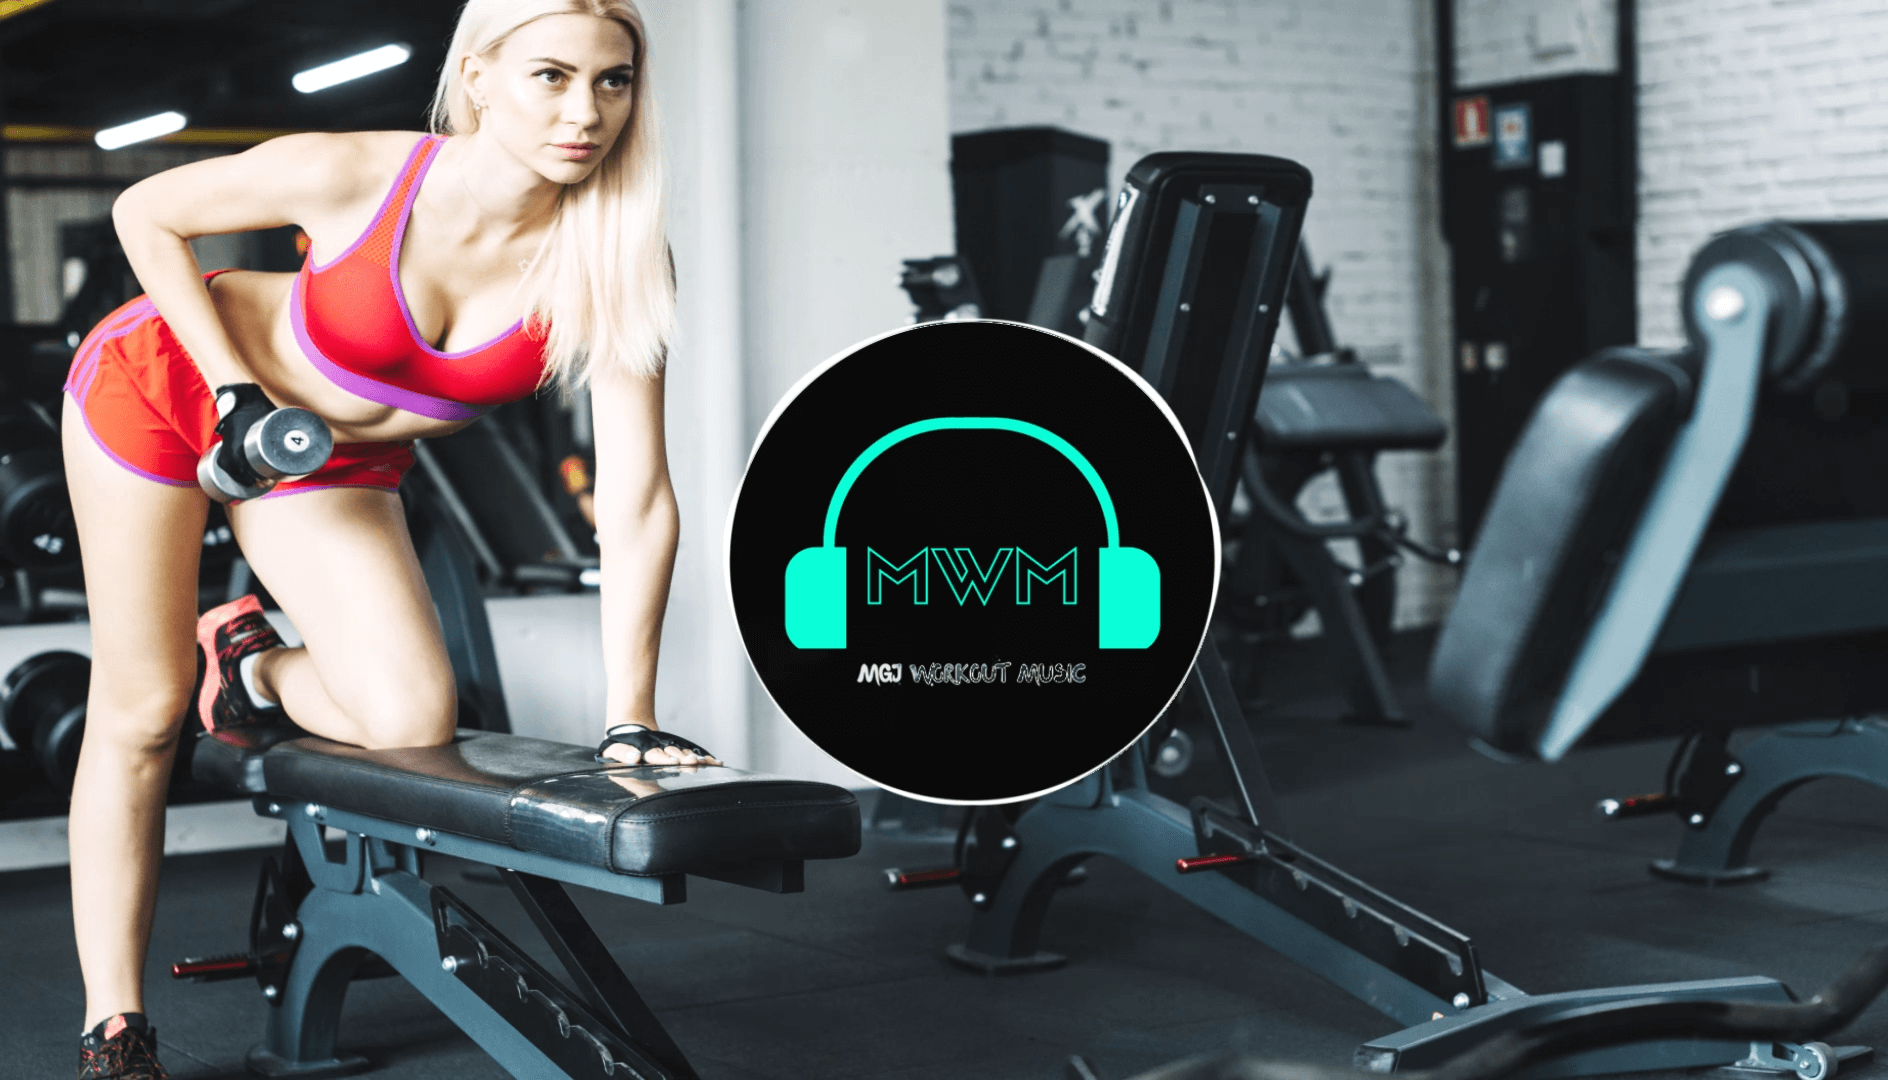 MGJ Workout Music - Rock Hits Workout Mix #28